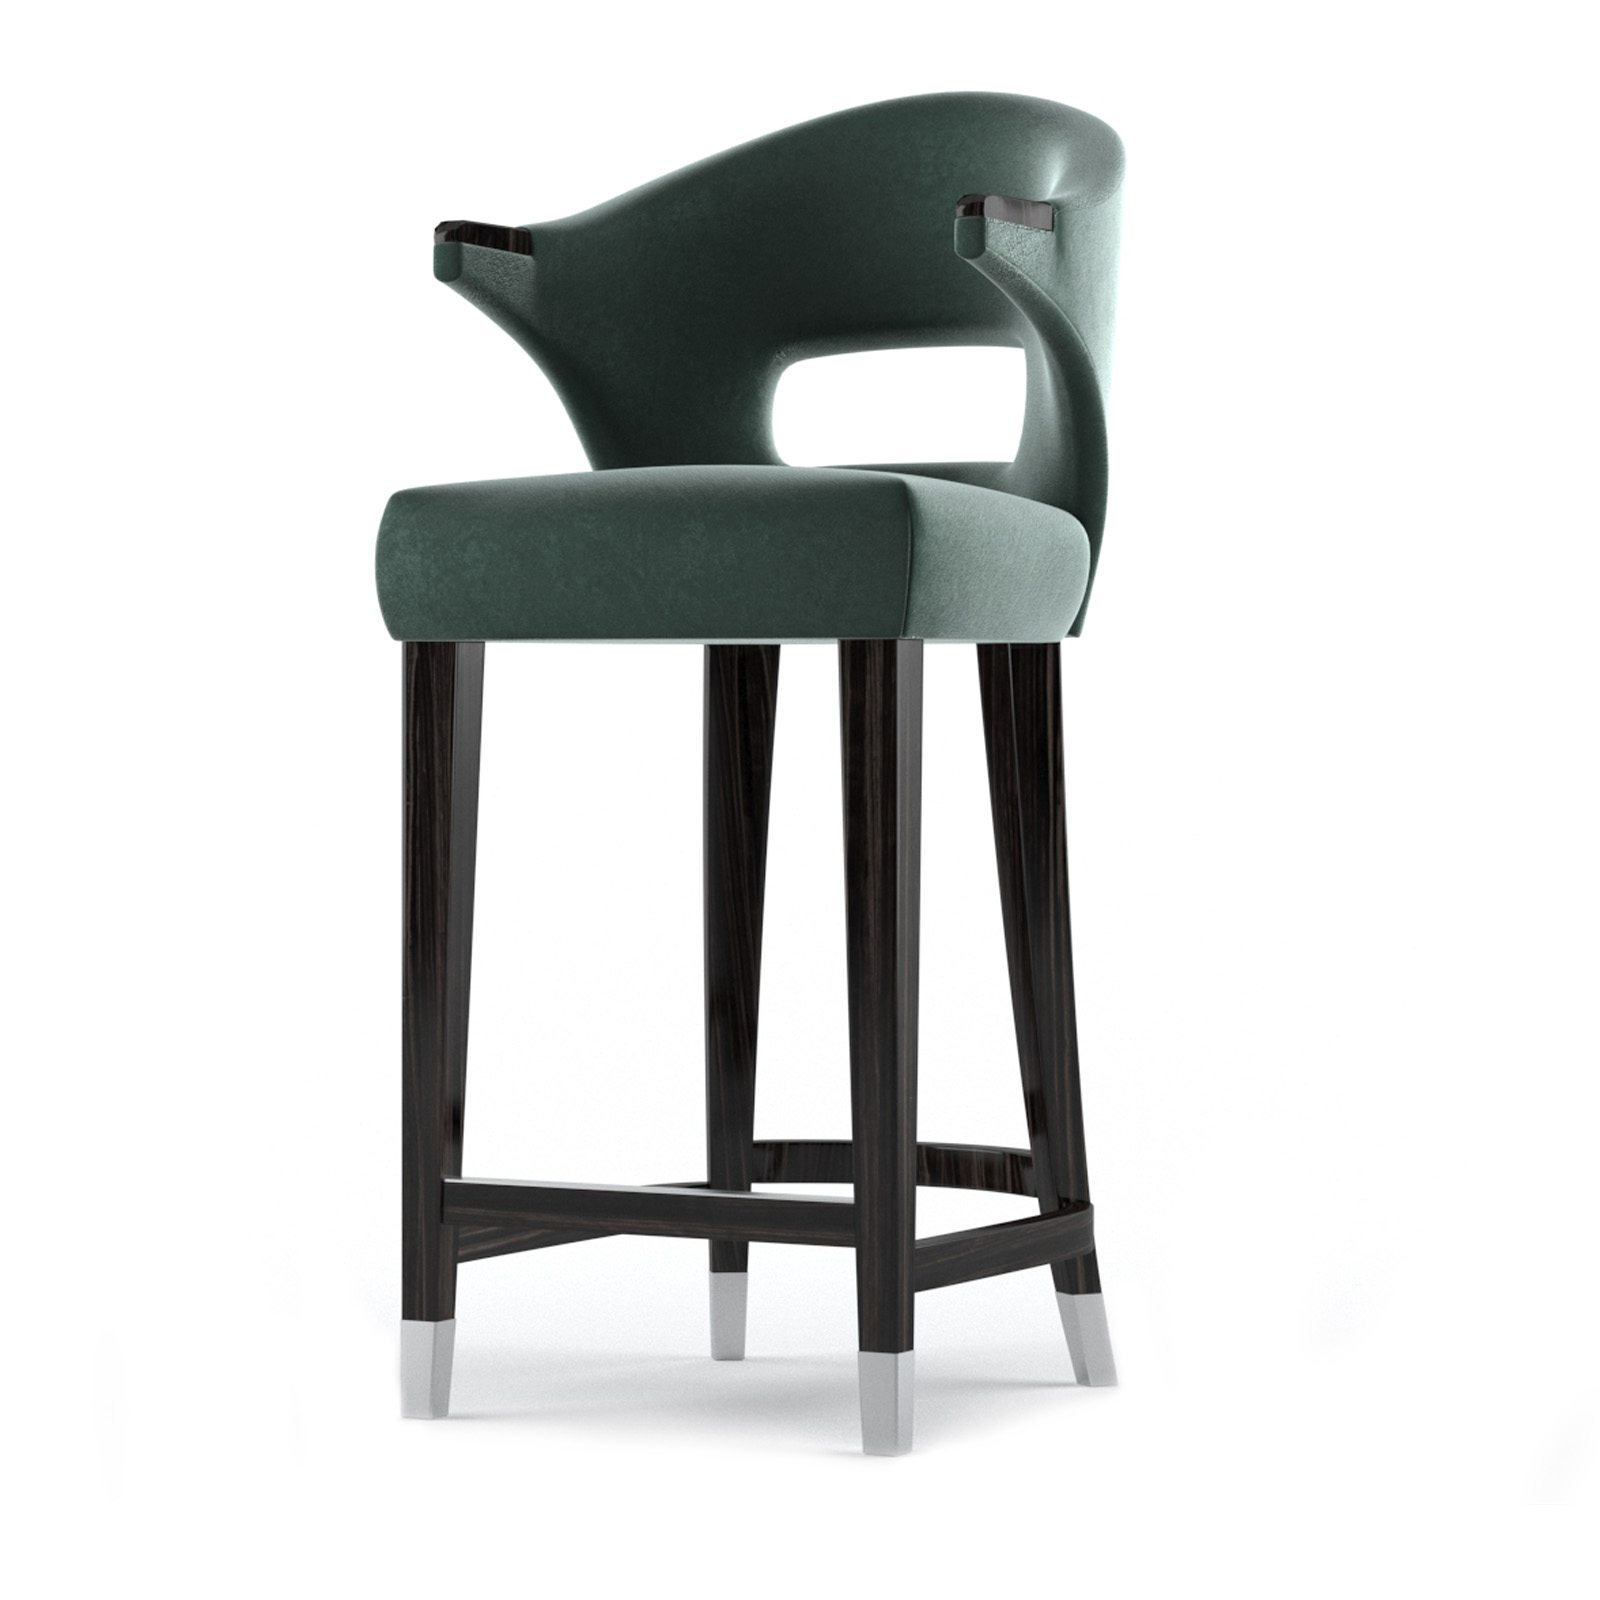 Pelham-Bar-Stool-by-Bonham-&-Bonham-03